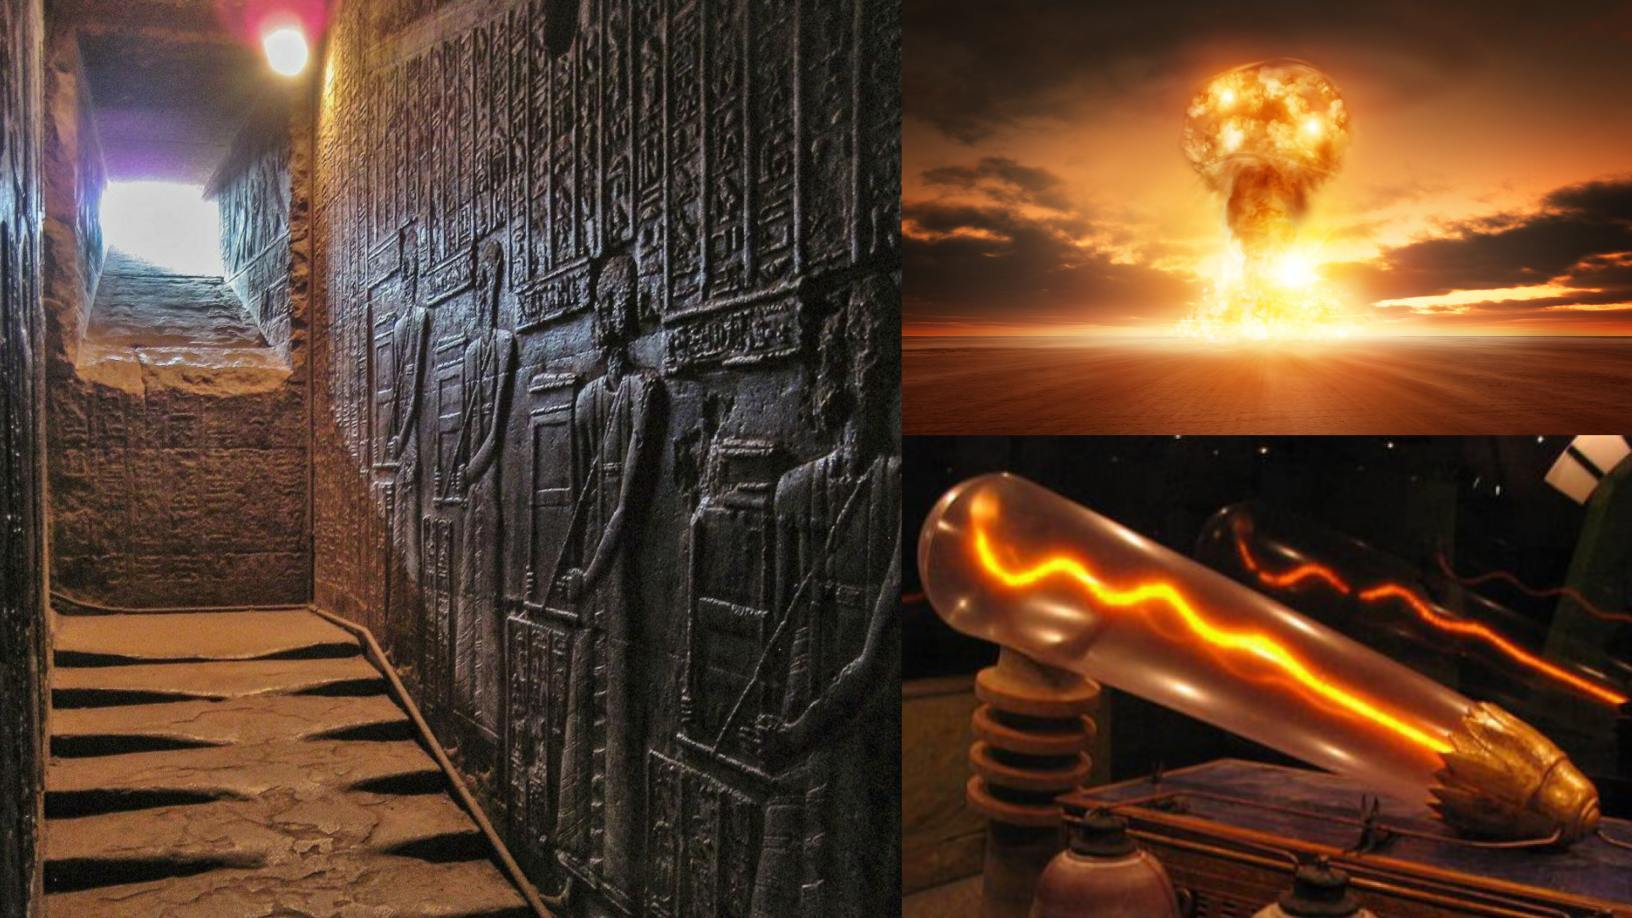 Melted stairs at Hathor Temple: What would have happened in the past? 2